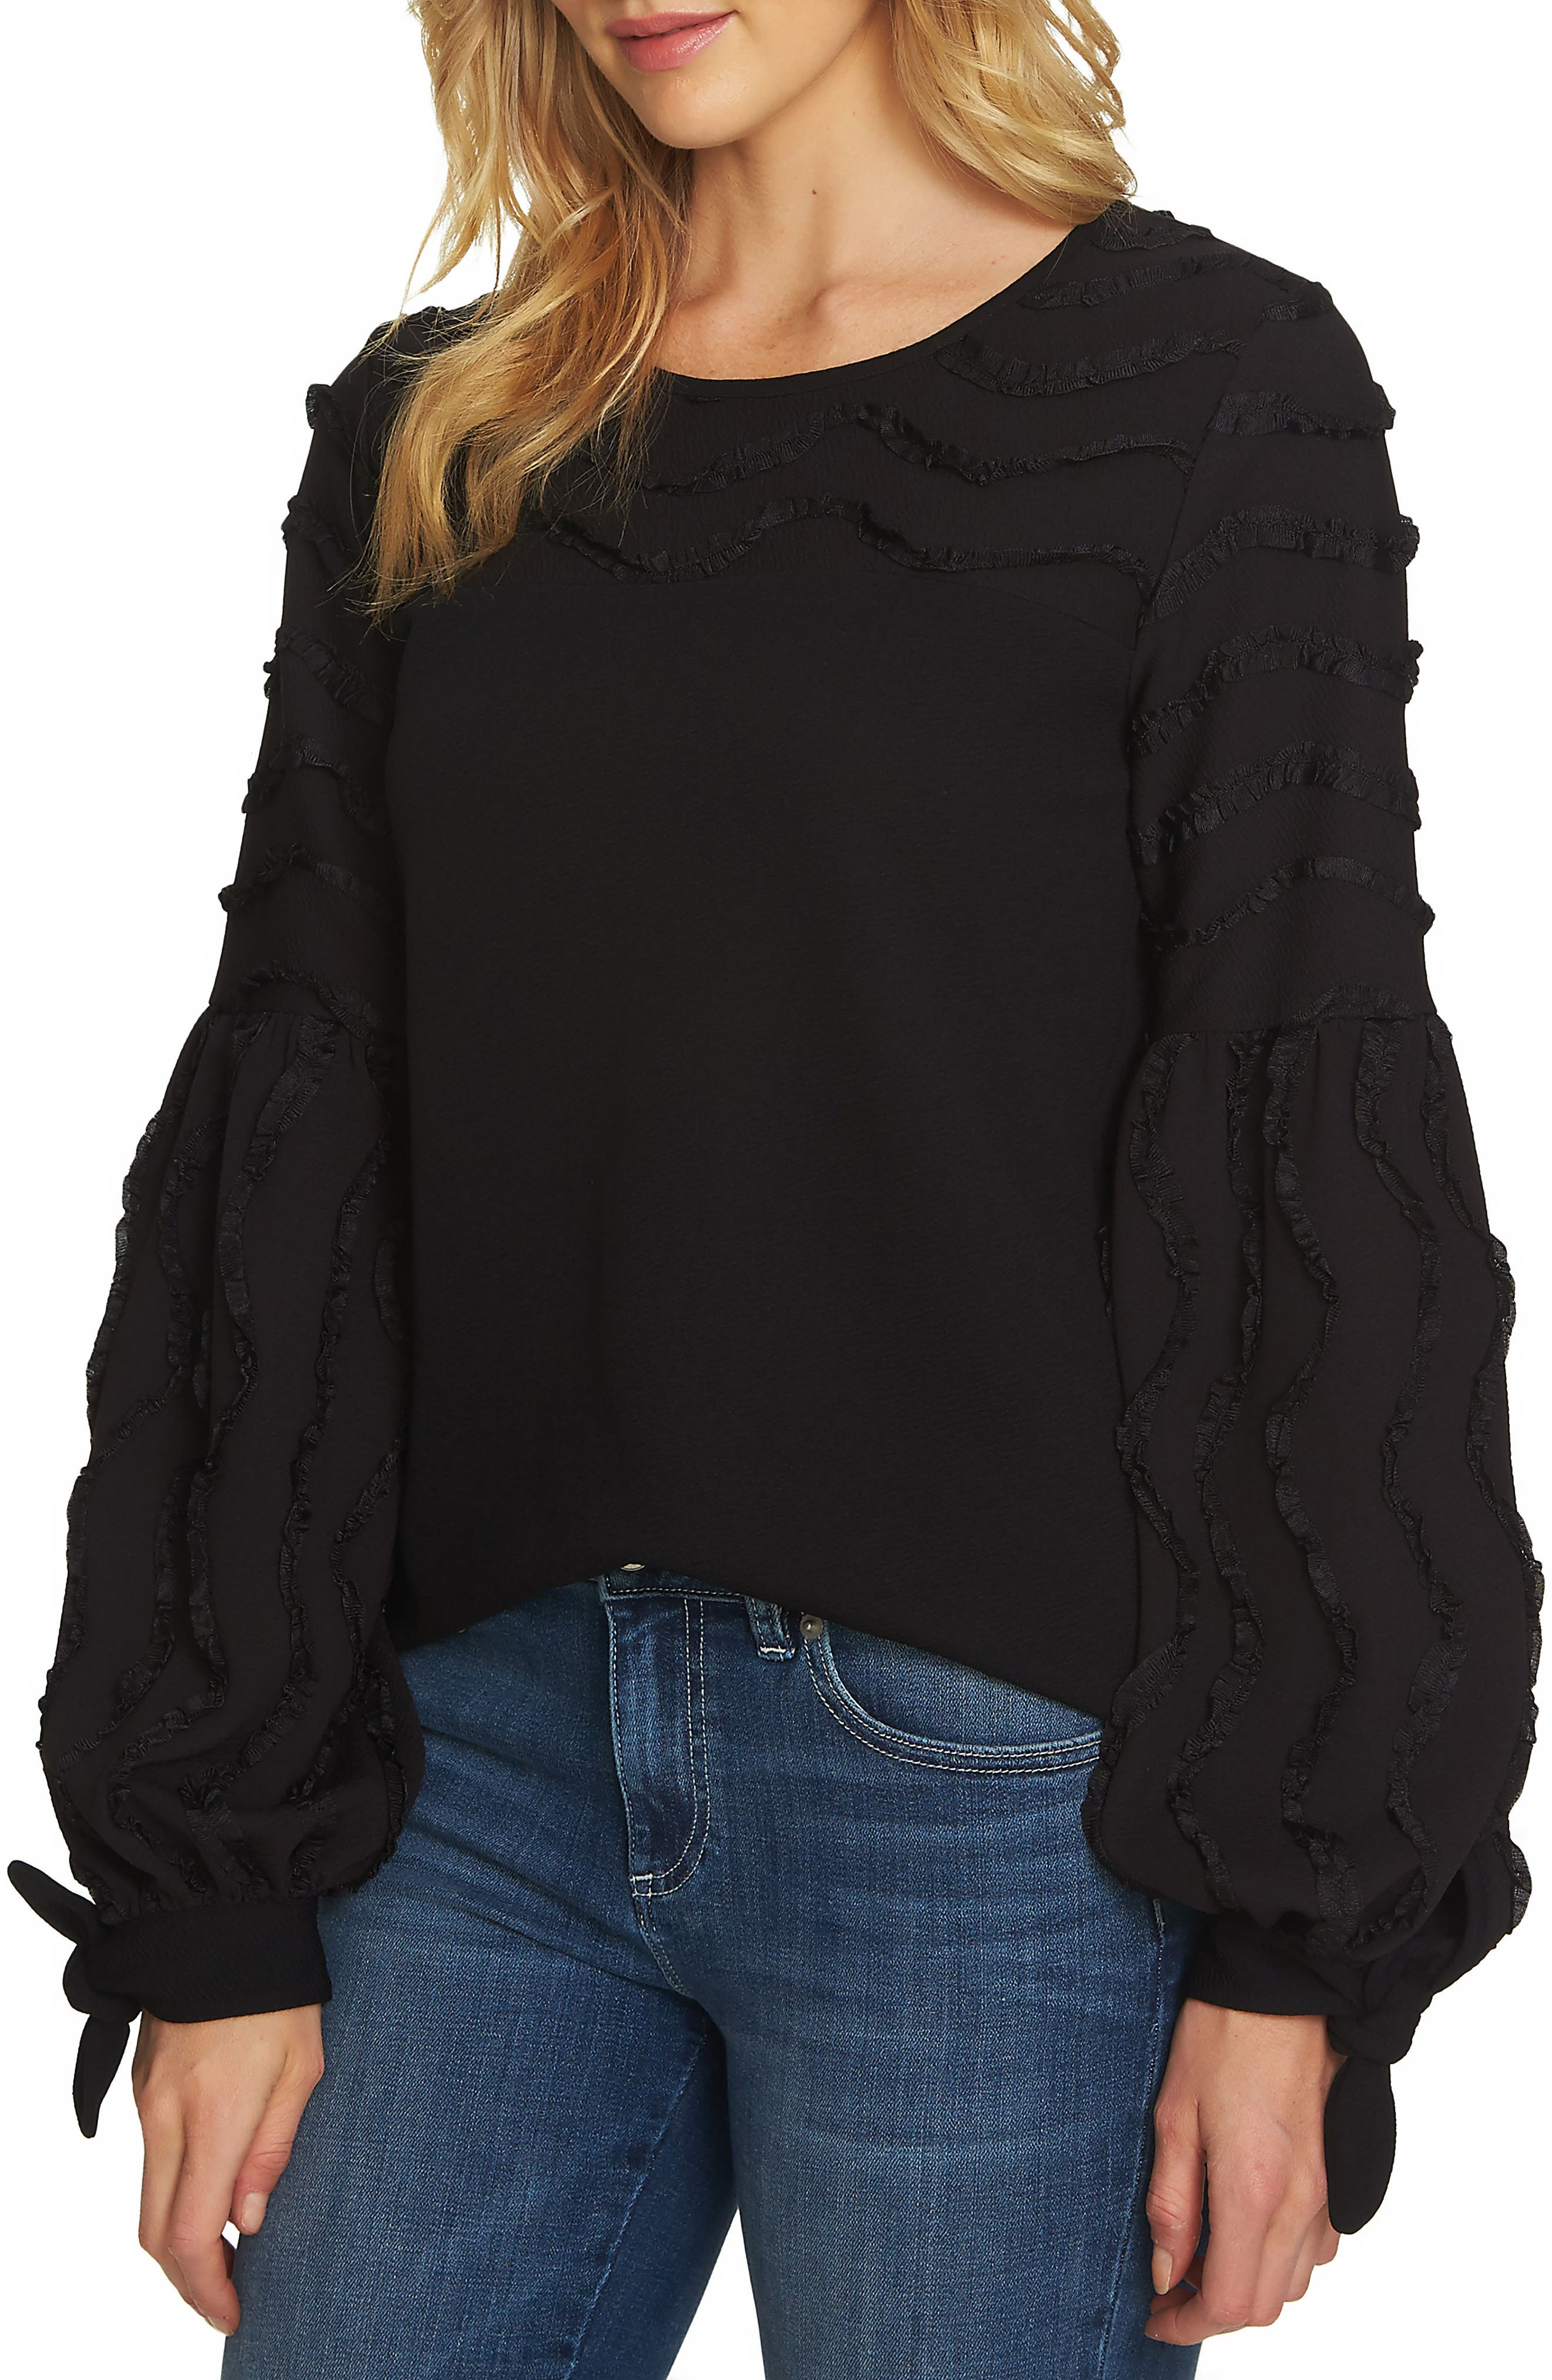 Balloon Sleeve Textured Knit Top,                         Main,                         color, Rich Black